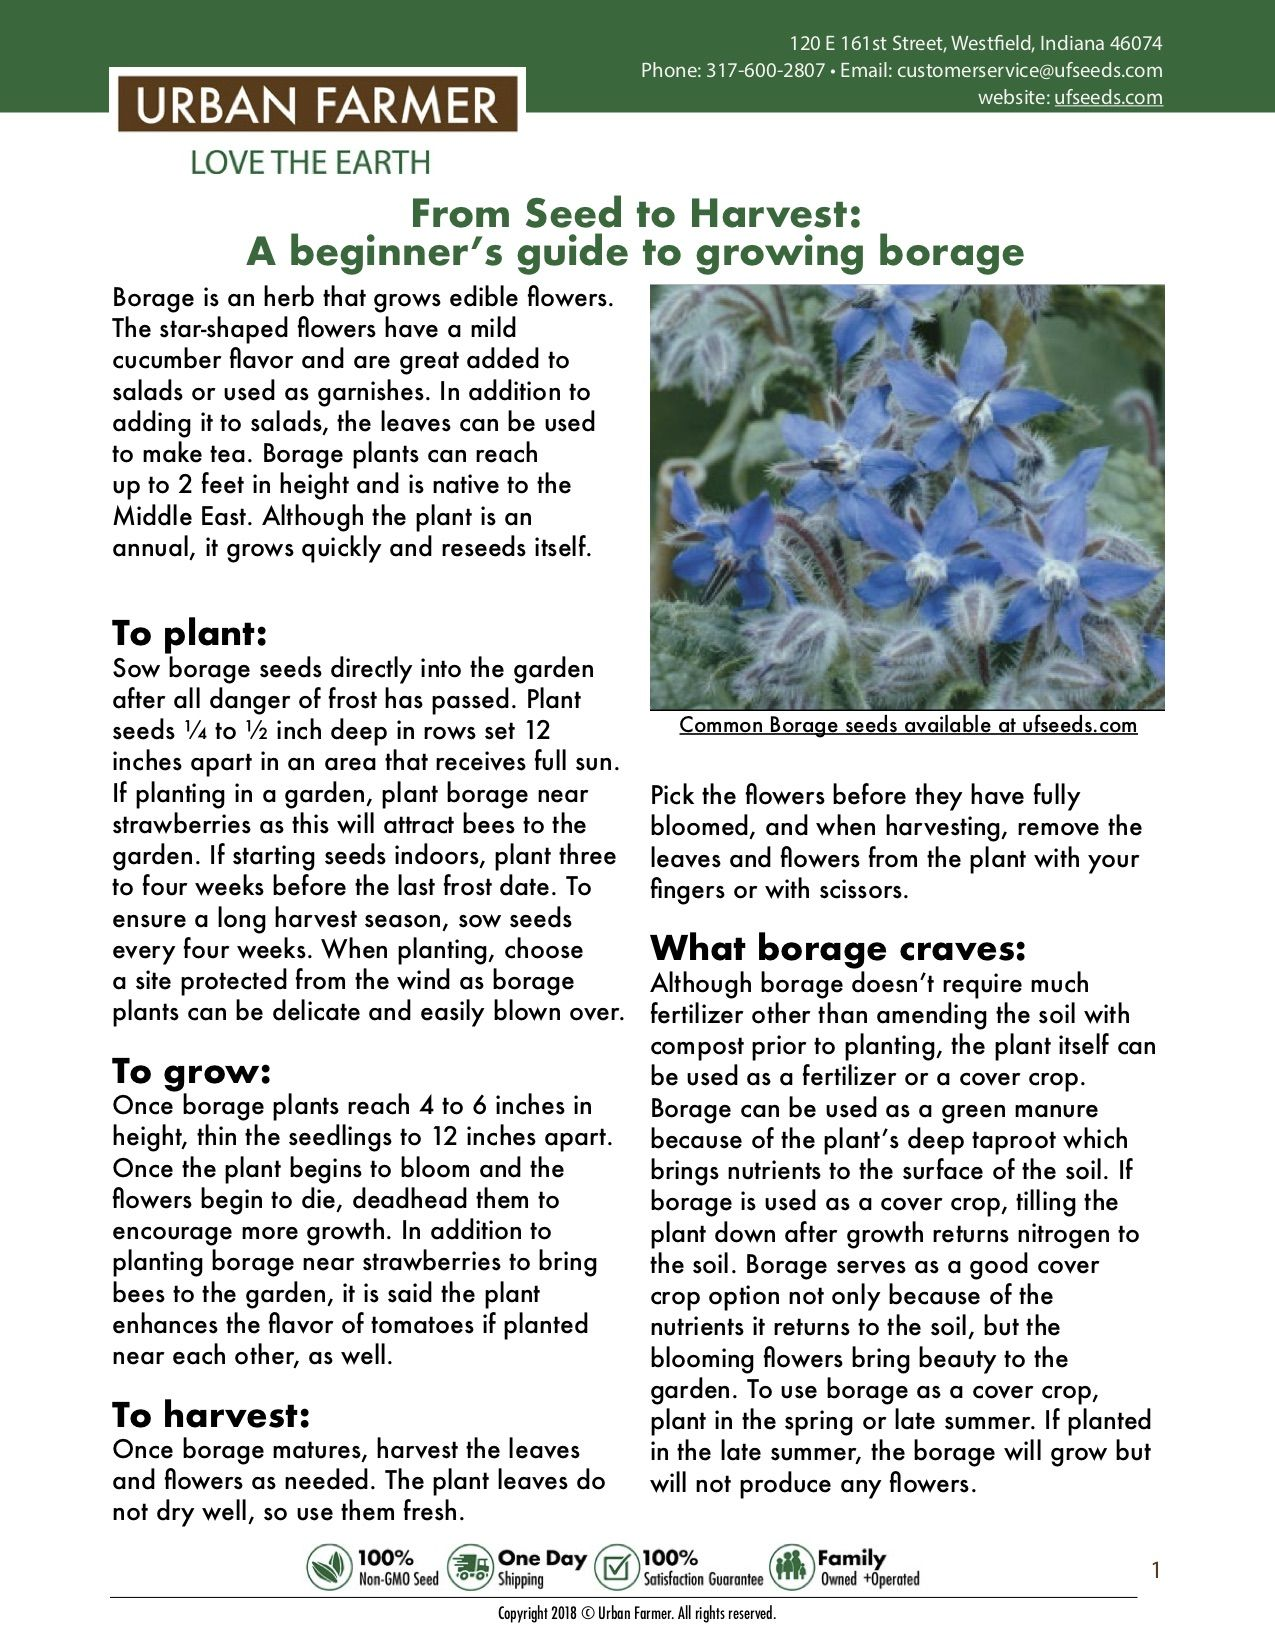 Borage From Seed To Harvest Urban Farmer Starting Seeds